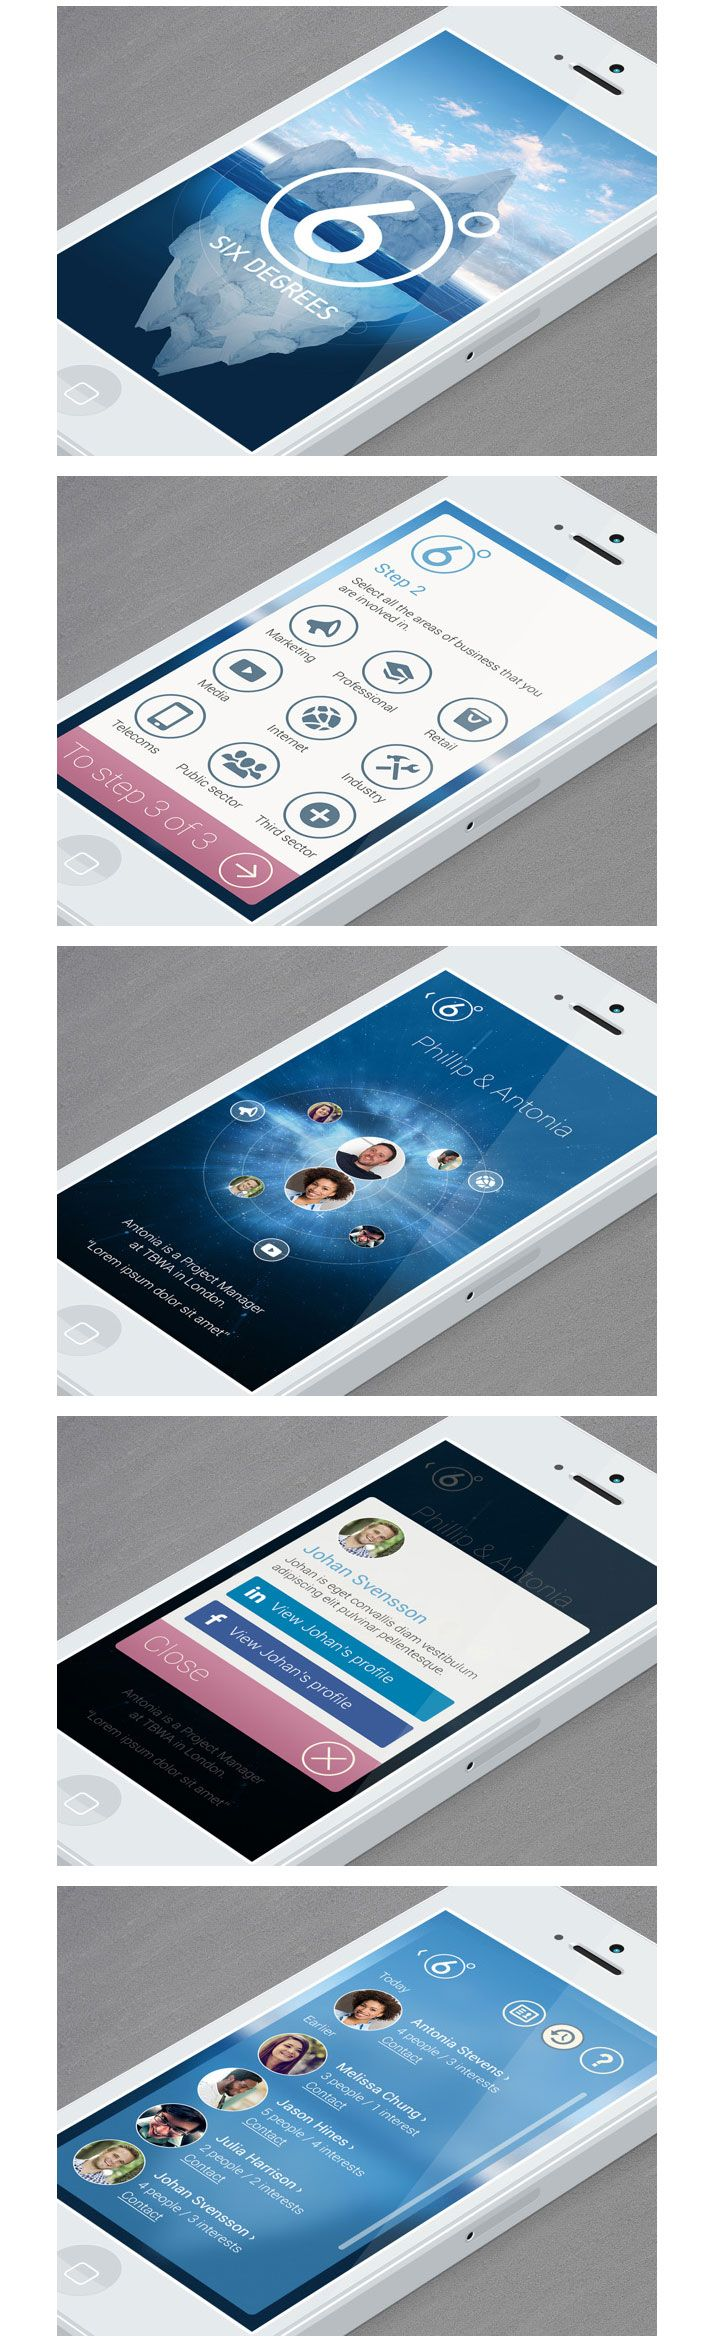 Daily Mobile UI Design Inspiration #174